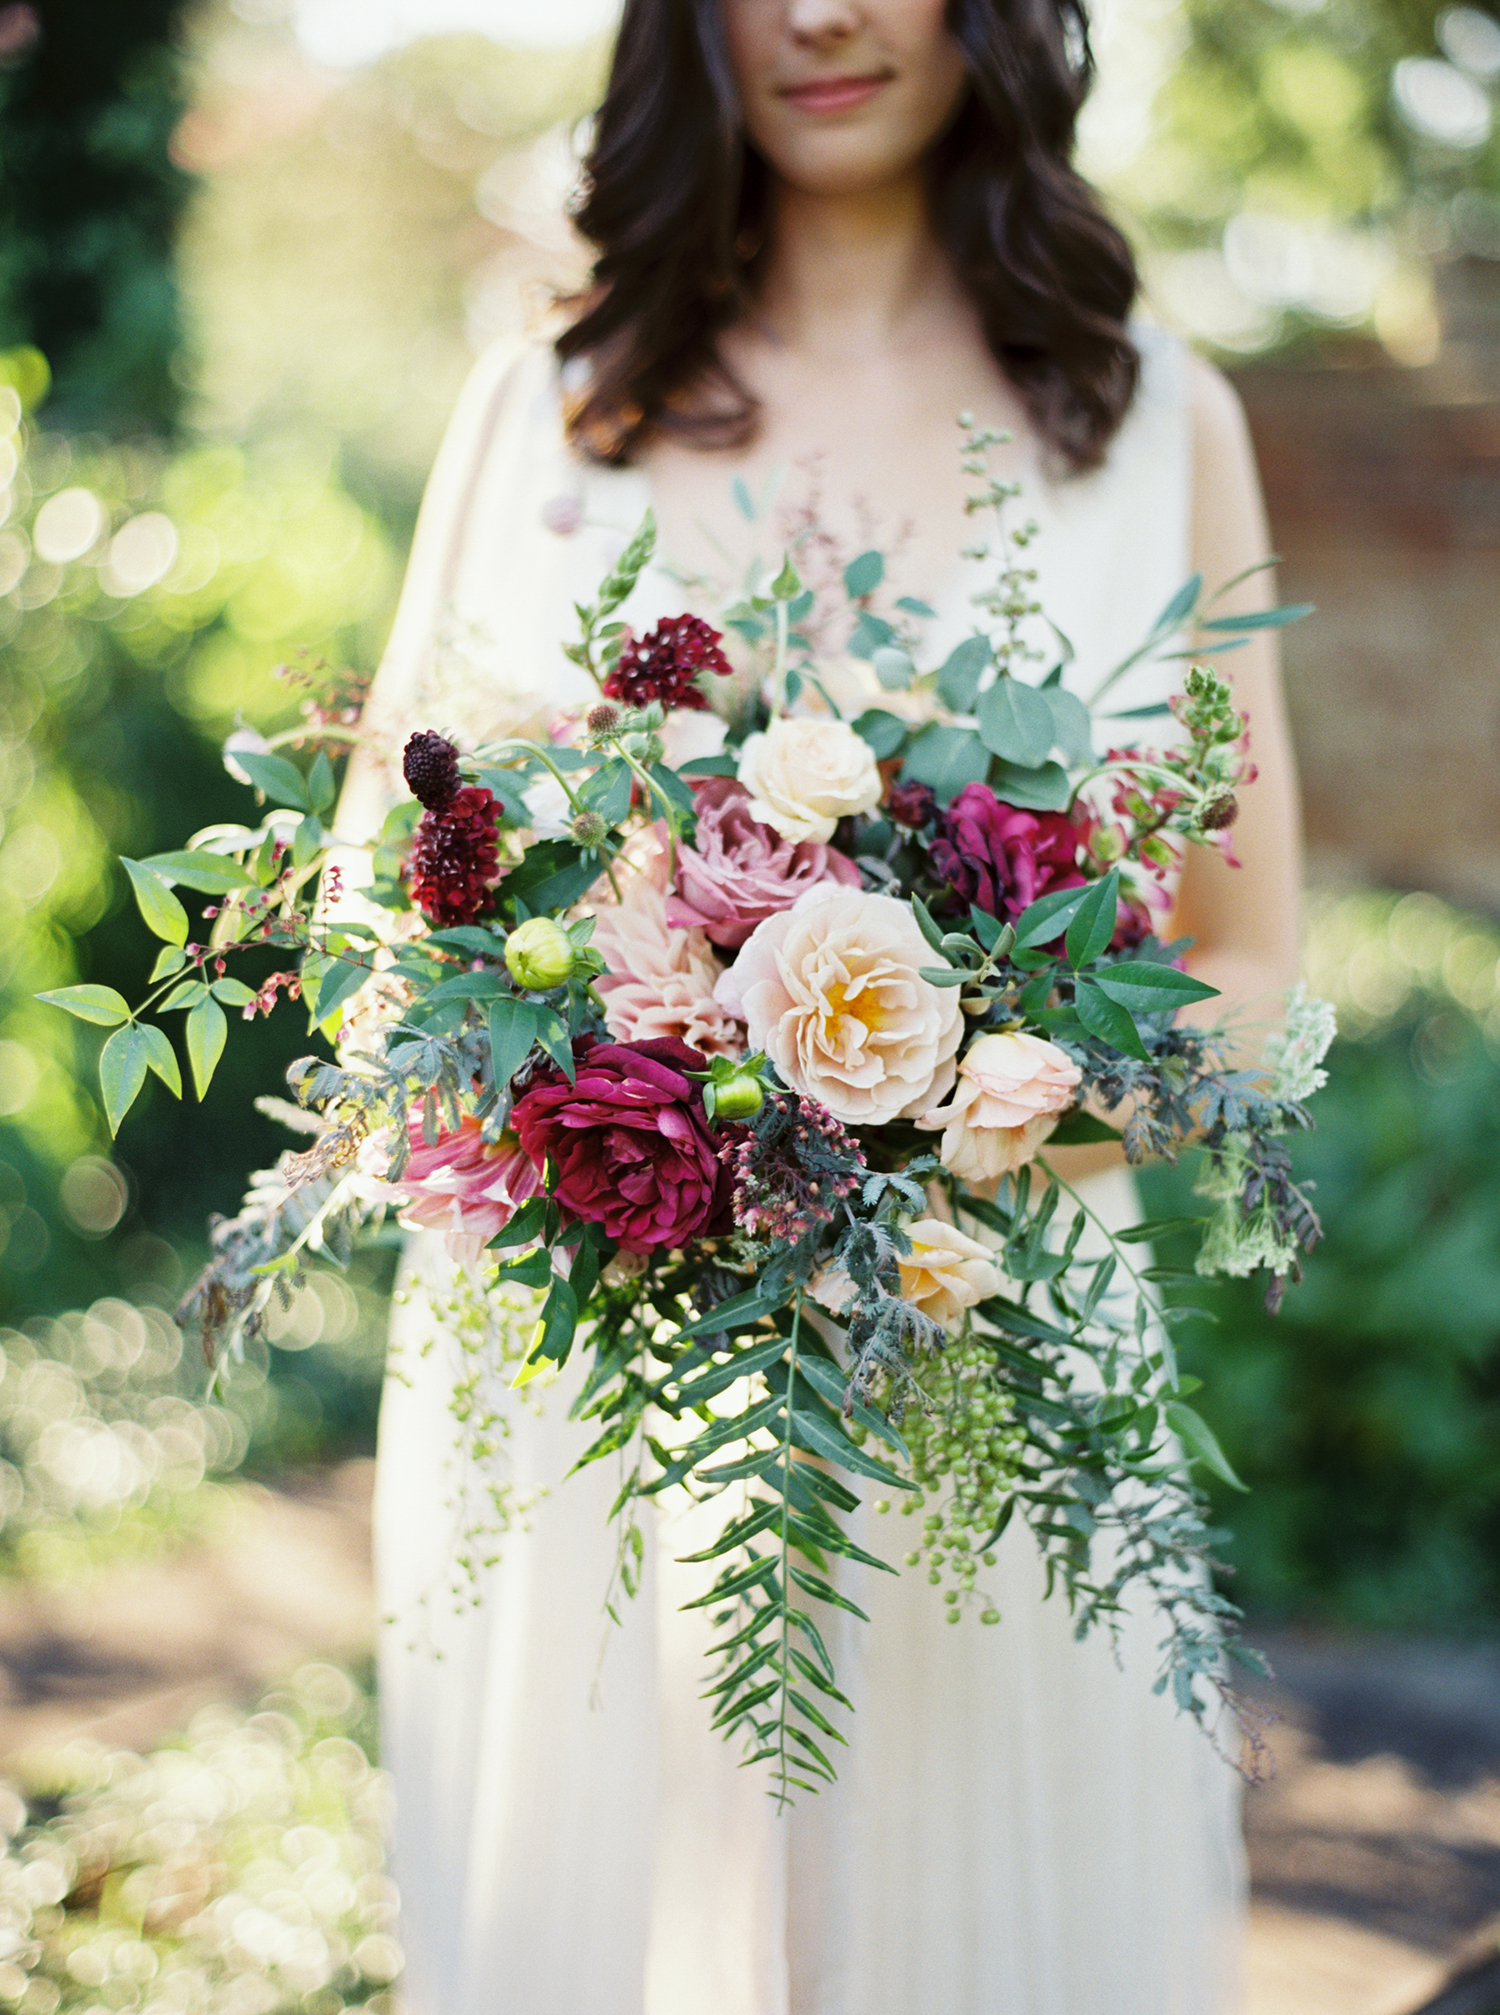 Romantic pink and burgundy rose wedding bouquet